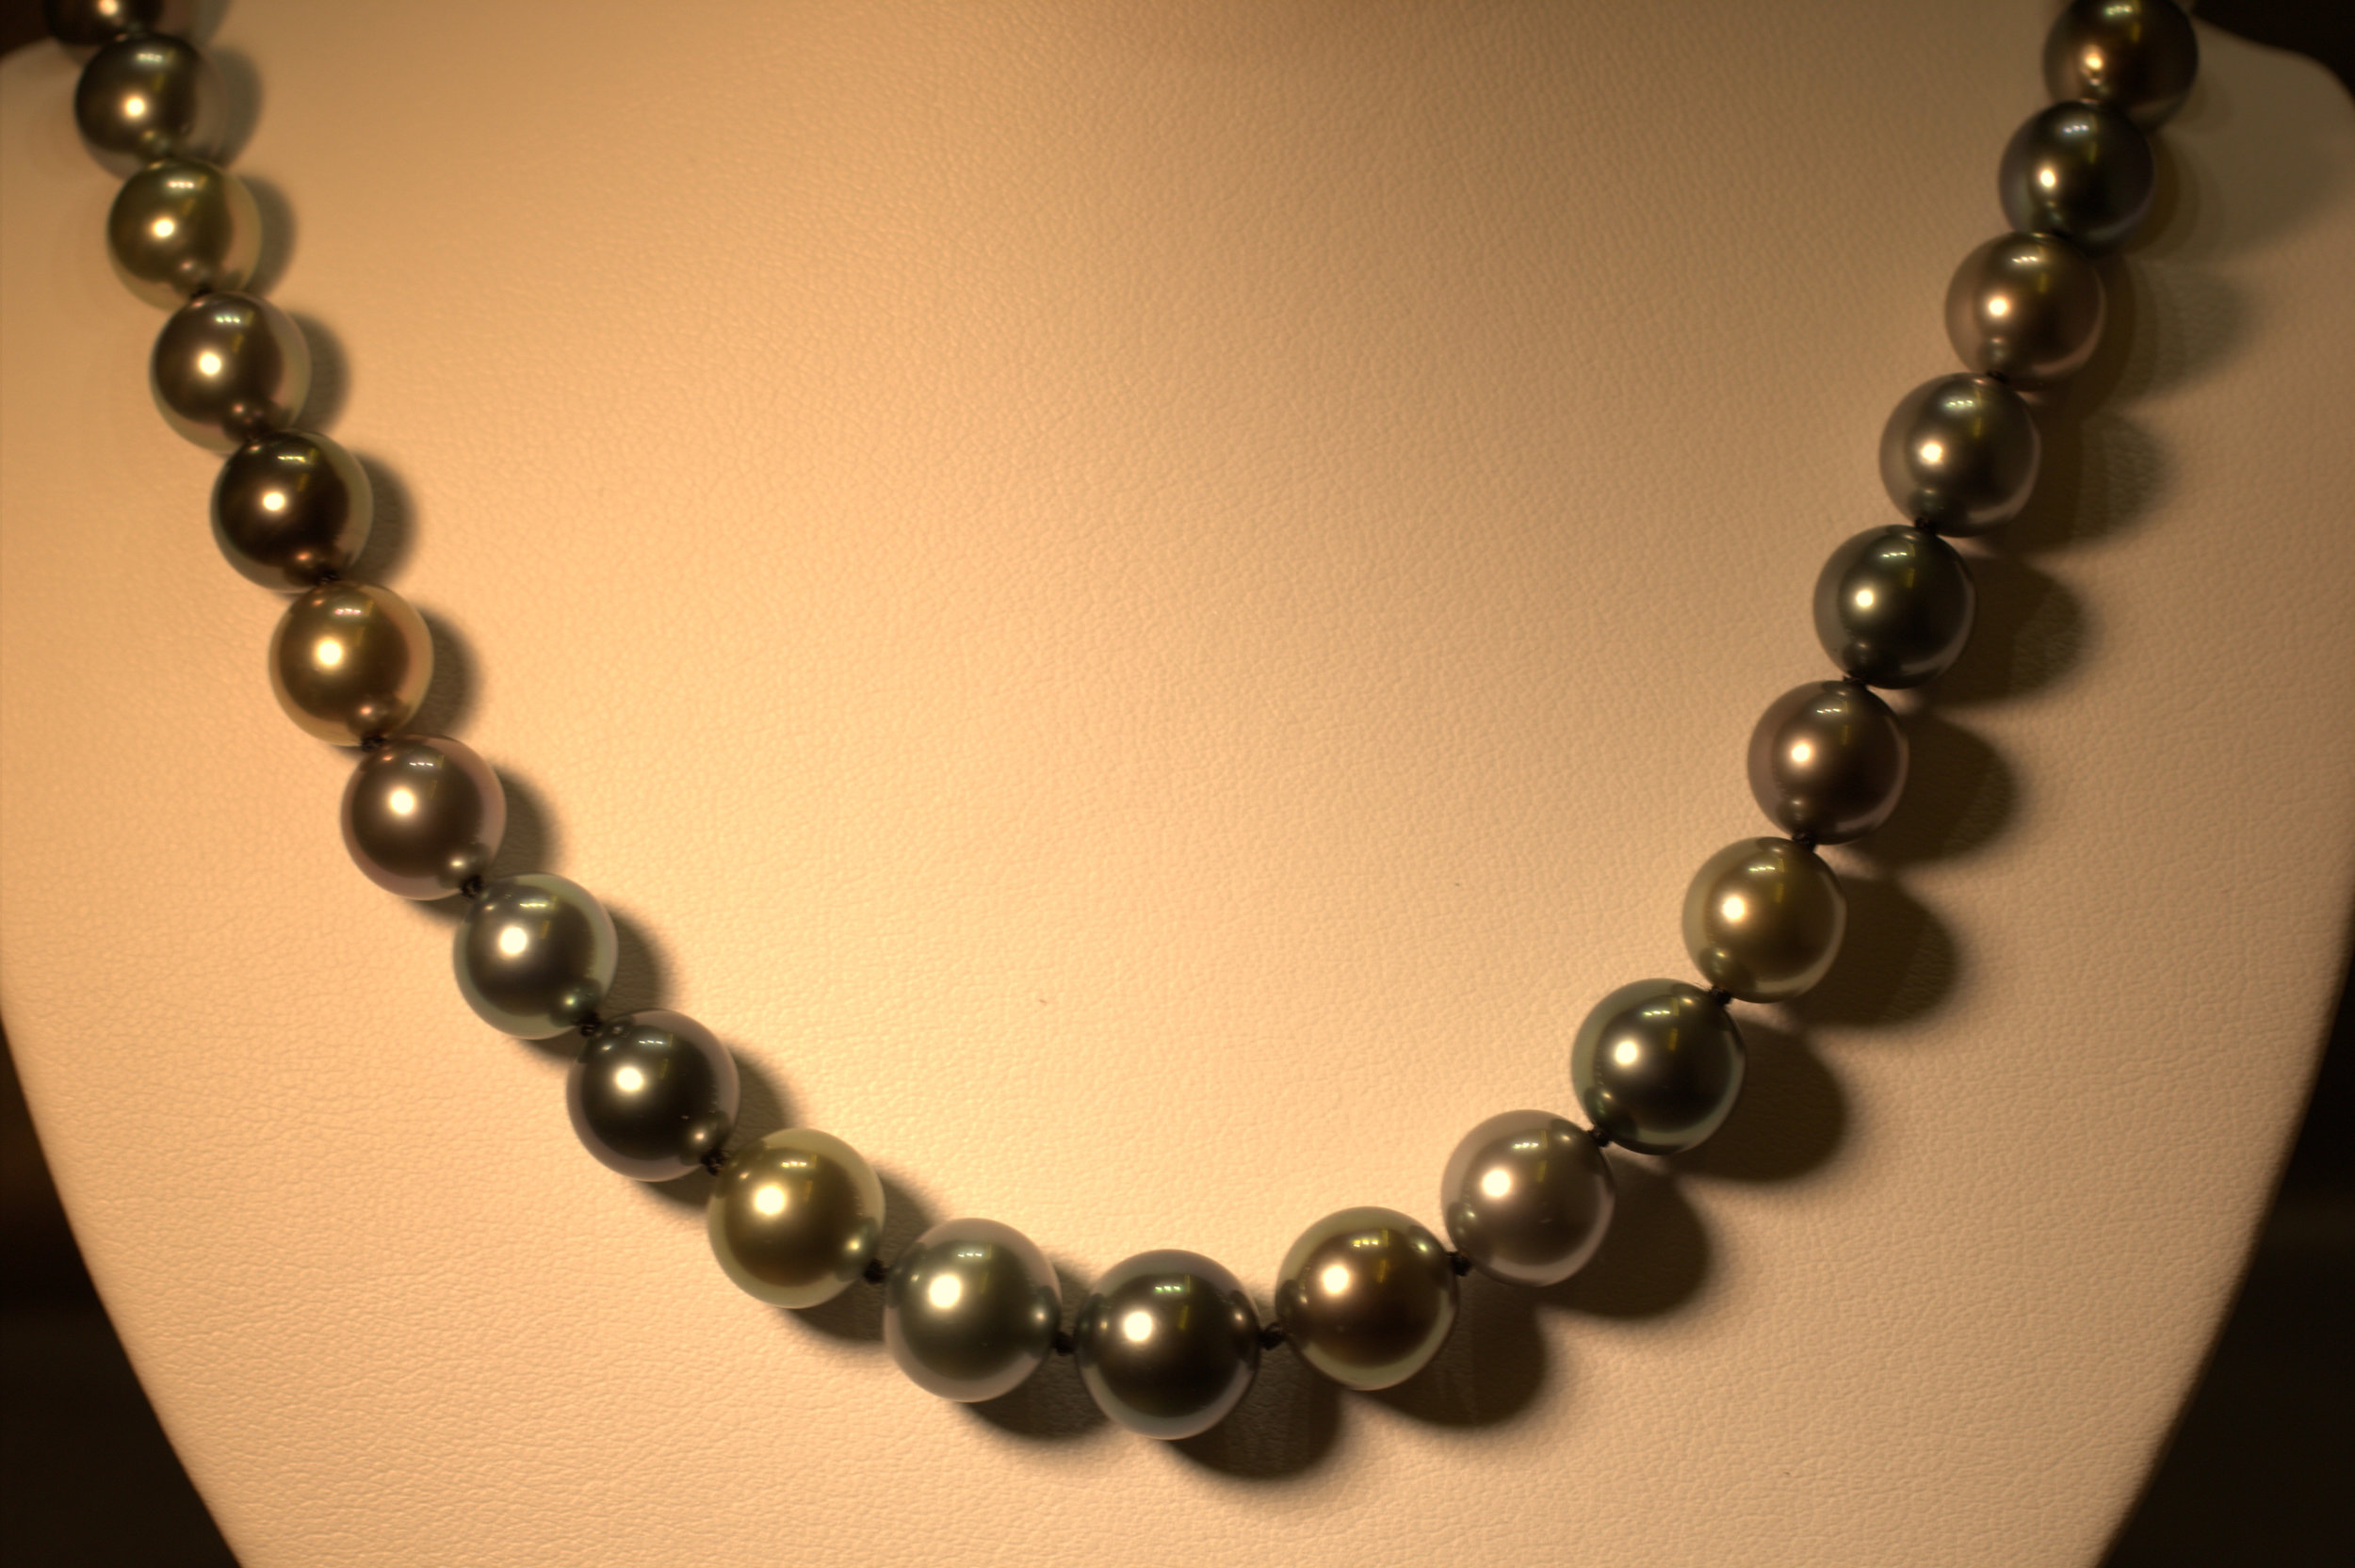 Amazing alternating colors from tahitian grey to black. Pearls by Mastoloni, truly the prettiest pearls in the world. Beautiful white gold clasp, great shine and luster.  $5000